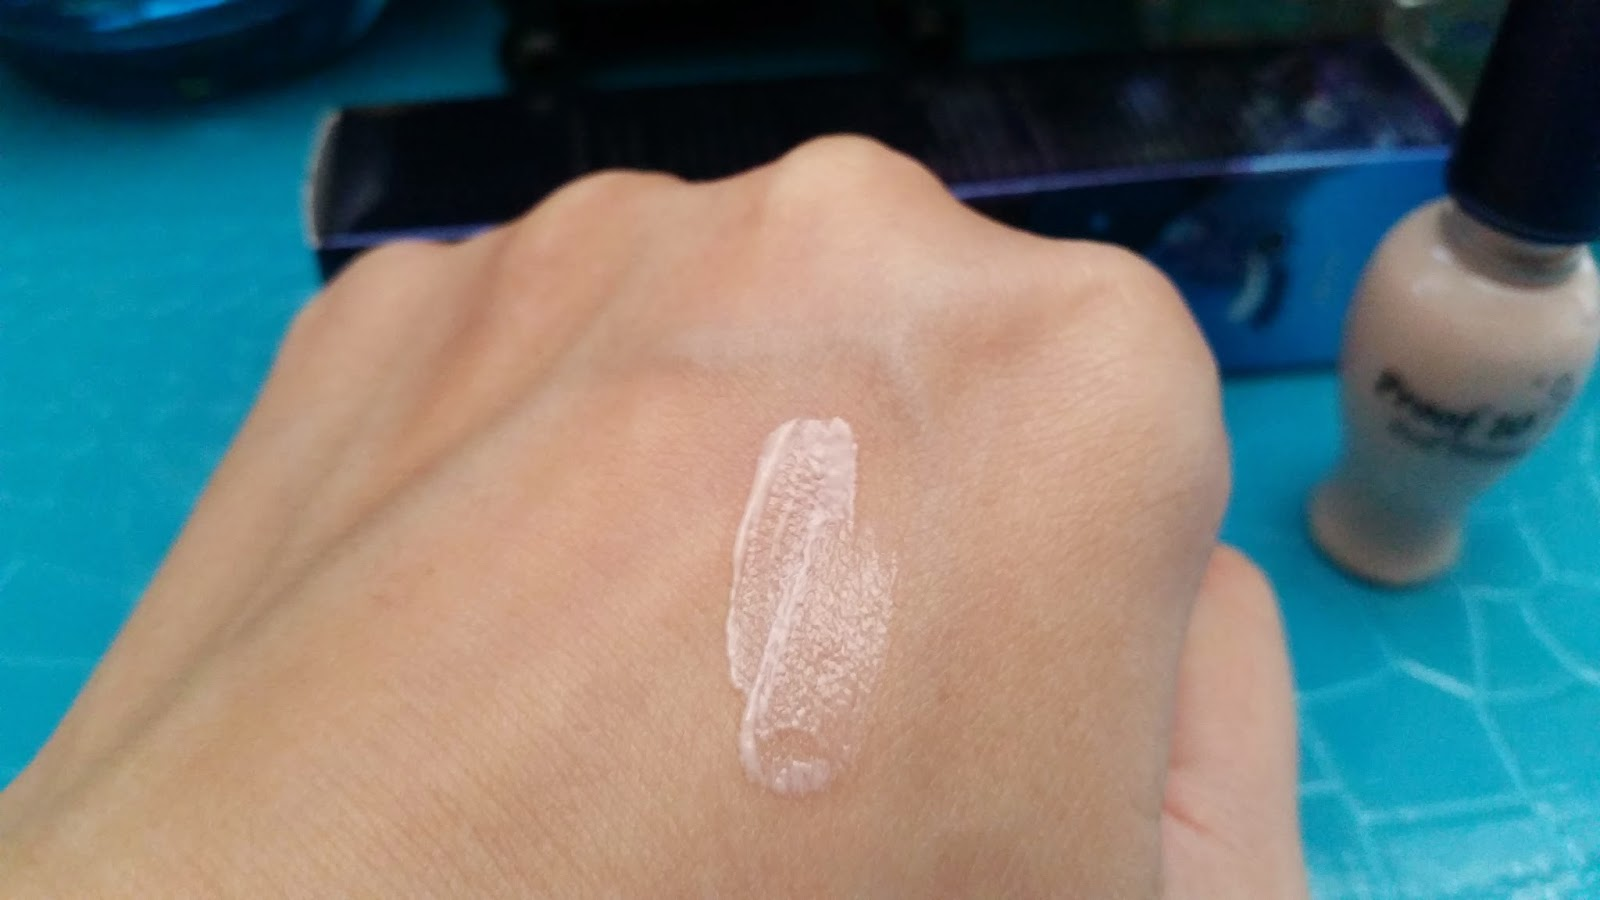 Etude House Proof 10 Eye Primer Pearly formula